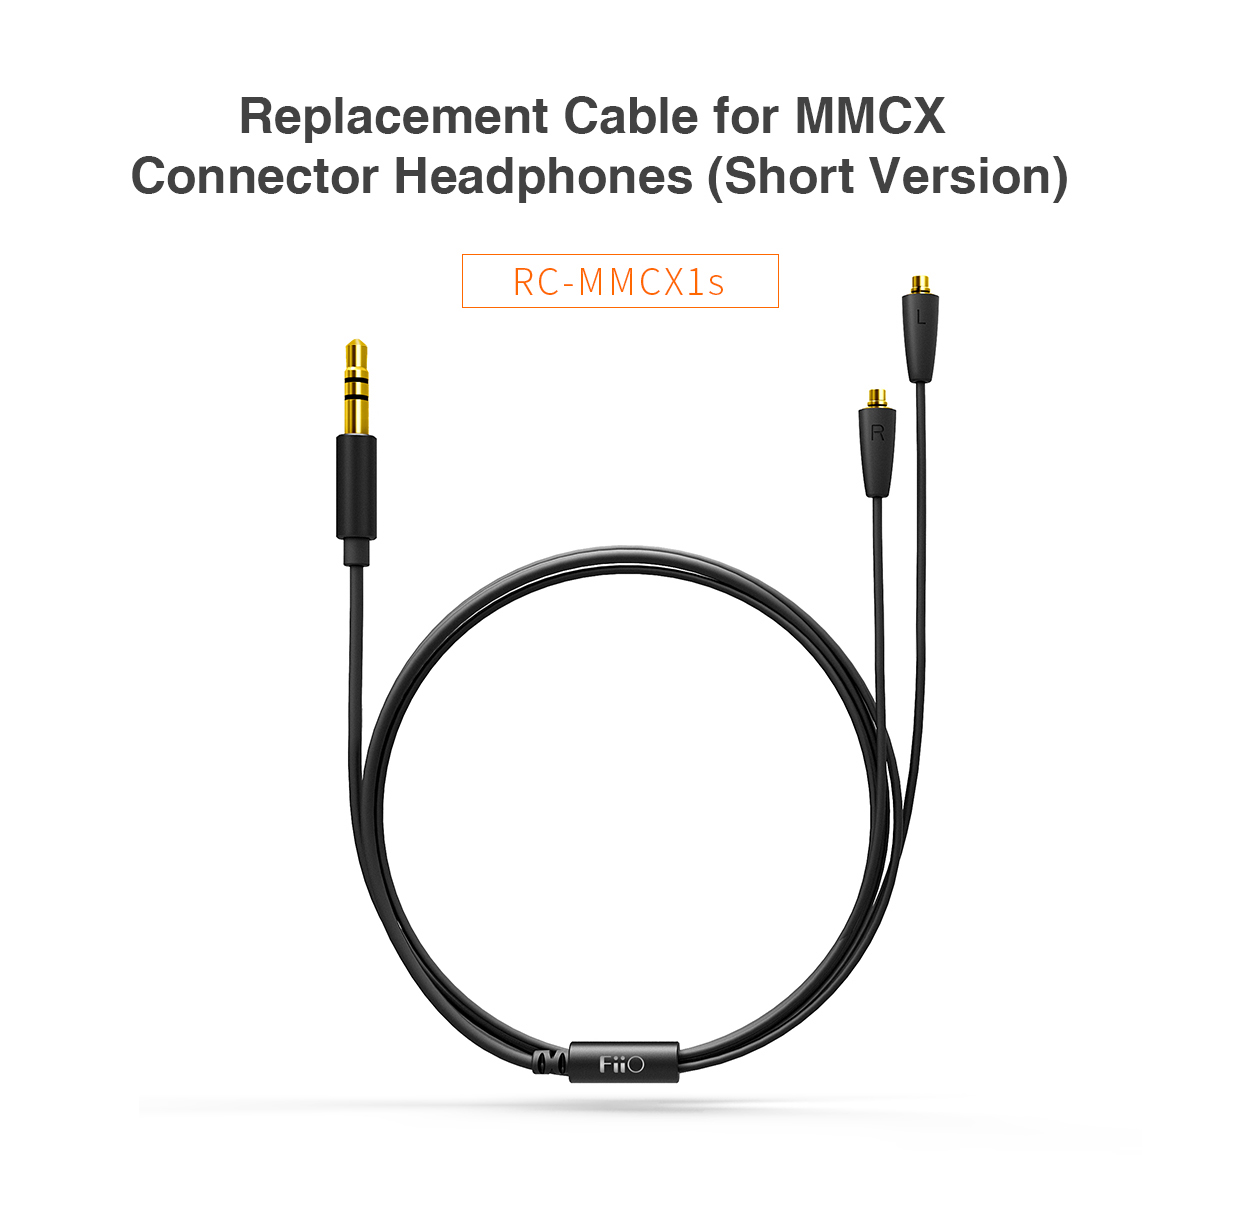 Fiio Rc Mmcx1s Headphone Cable